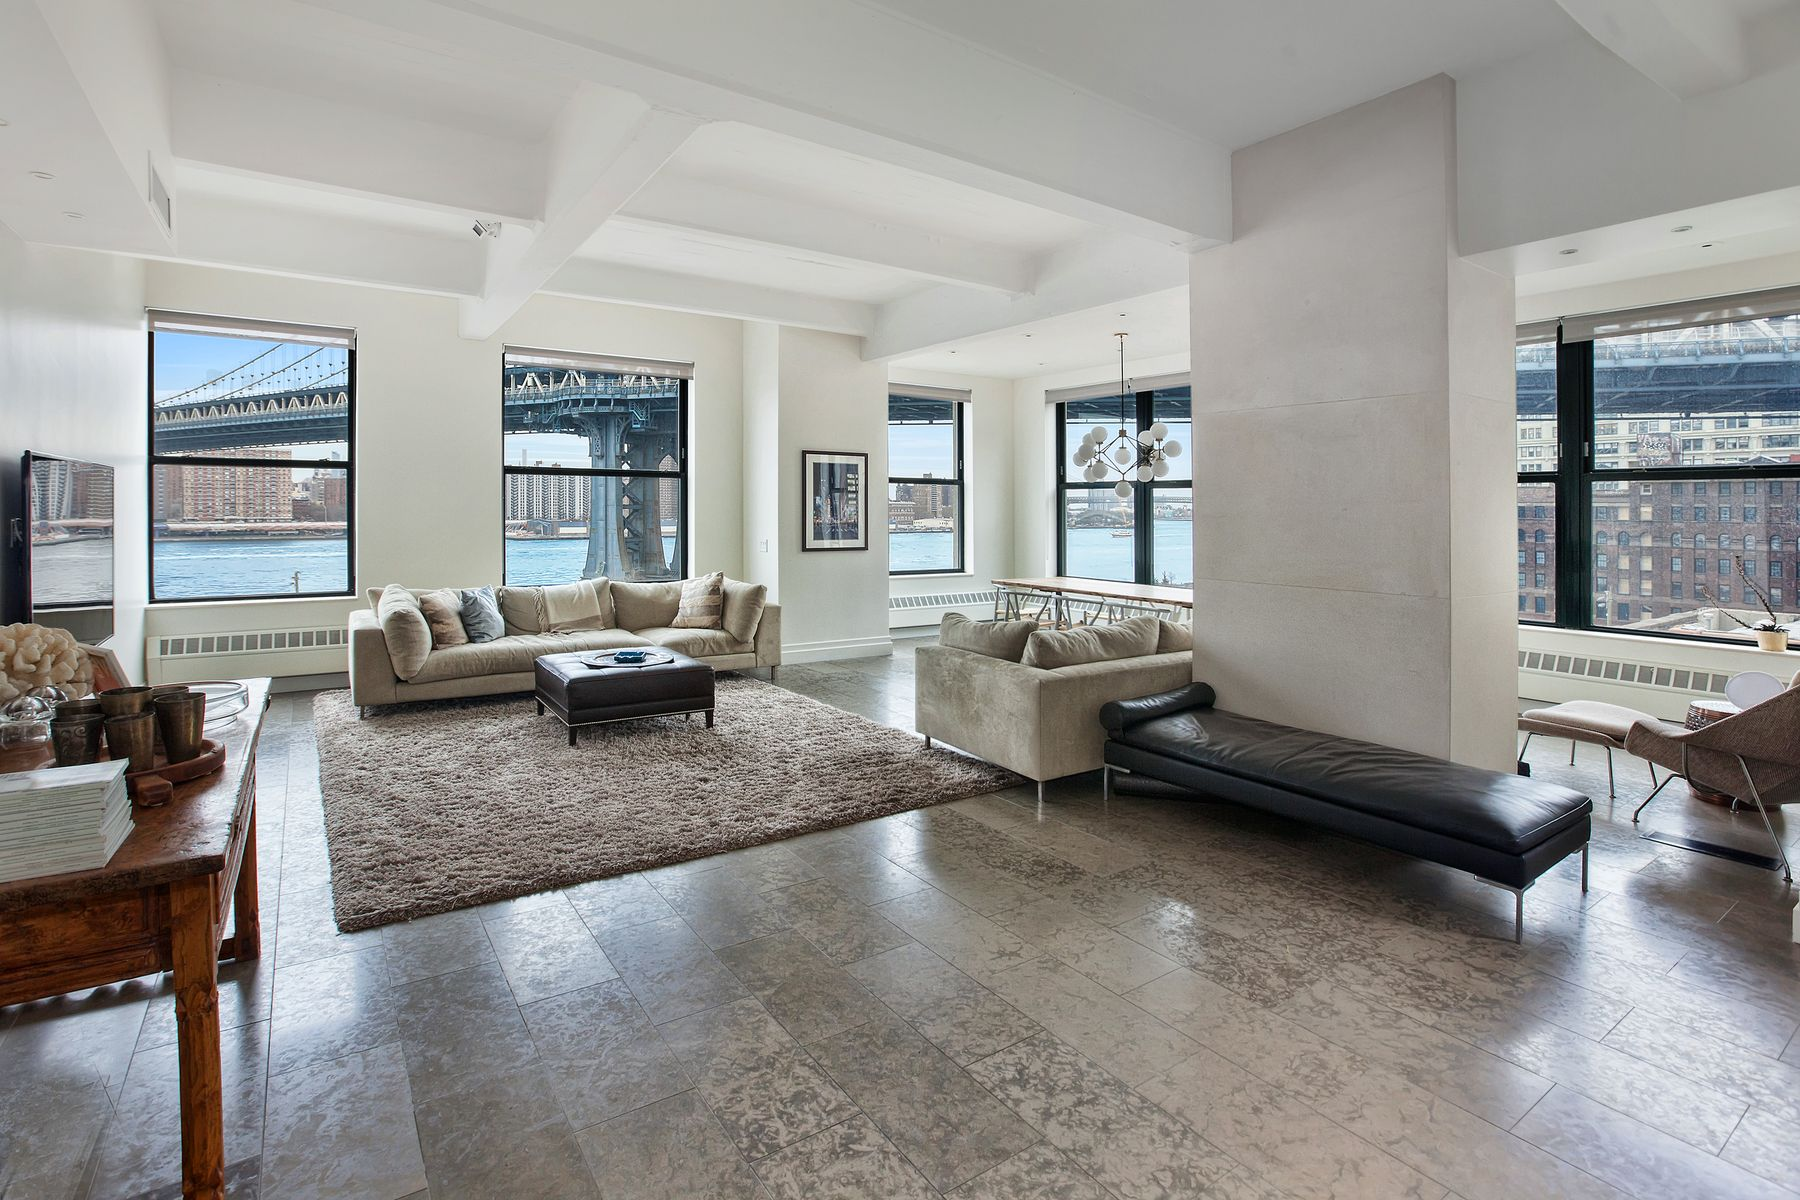 Condominiums for Sale at Spacious, Renovated Waterfront Loft 1 Main Street Apt 5D Brooklyn, New York 11201 United States